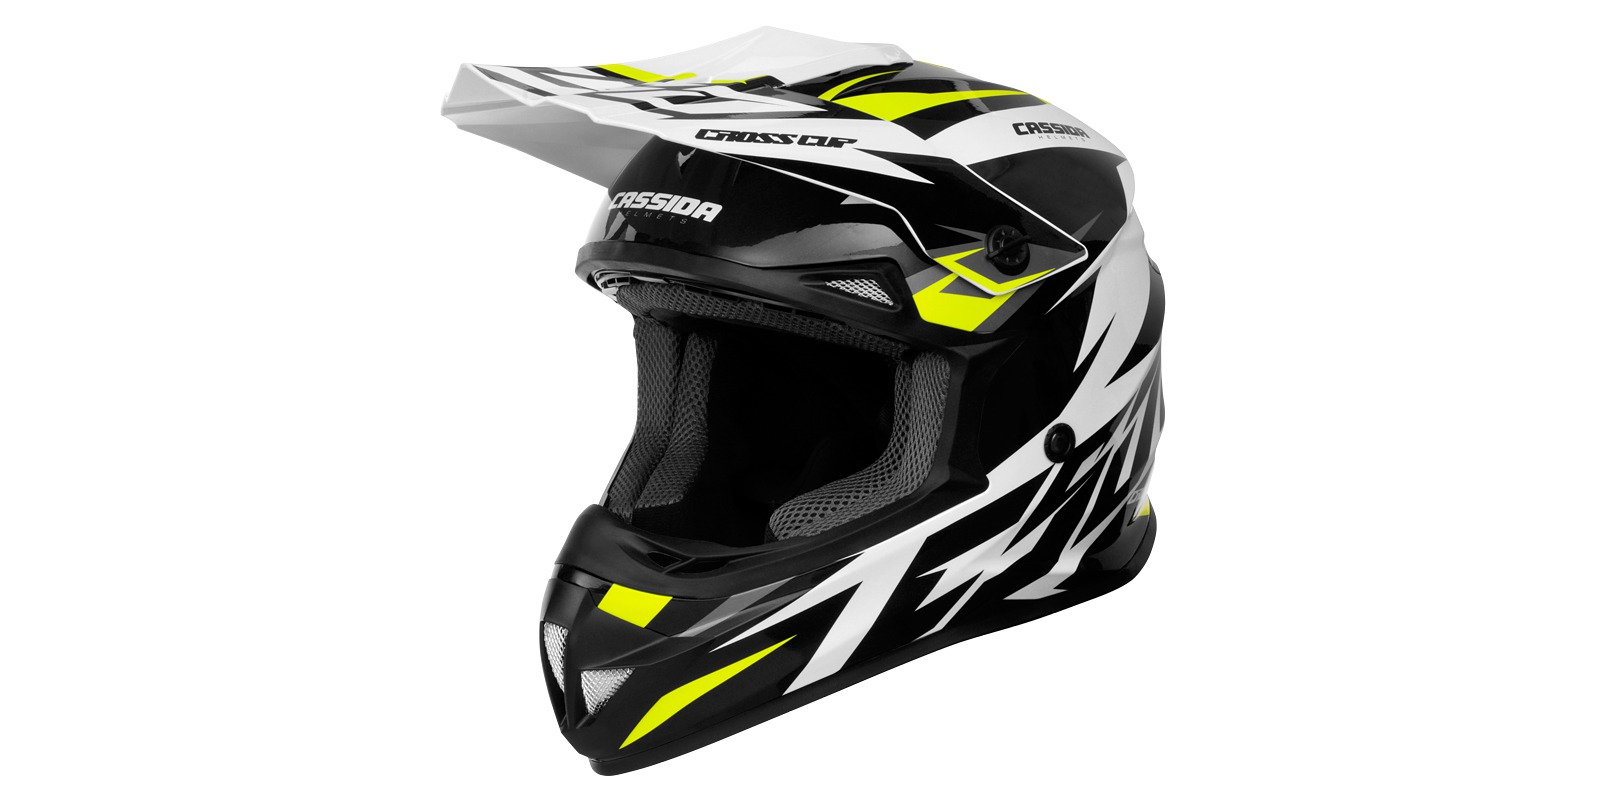 Cassida CROSS CUP 2 white/yellow